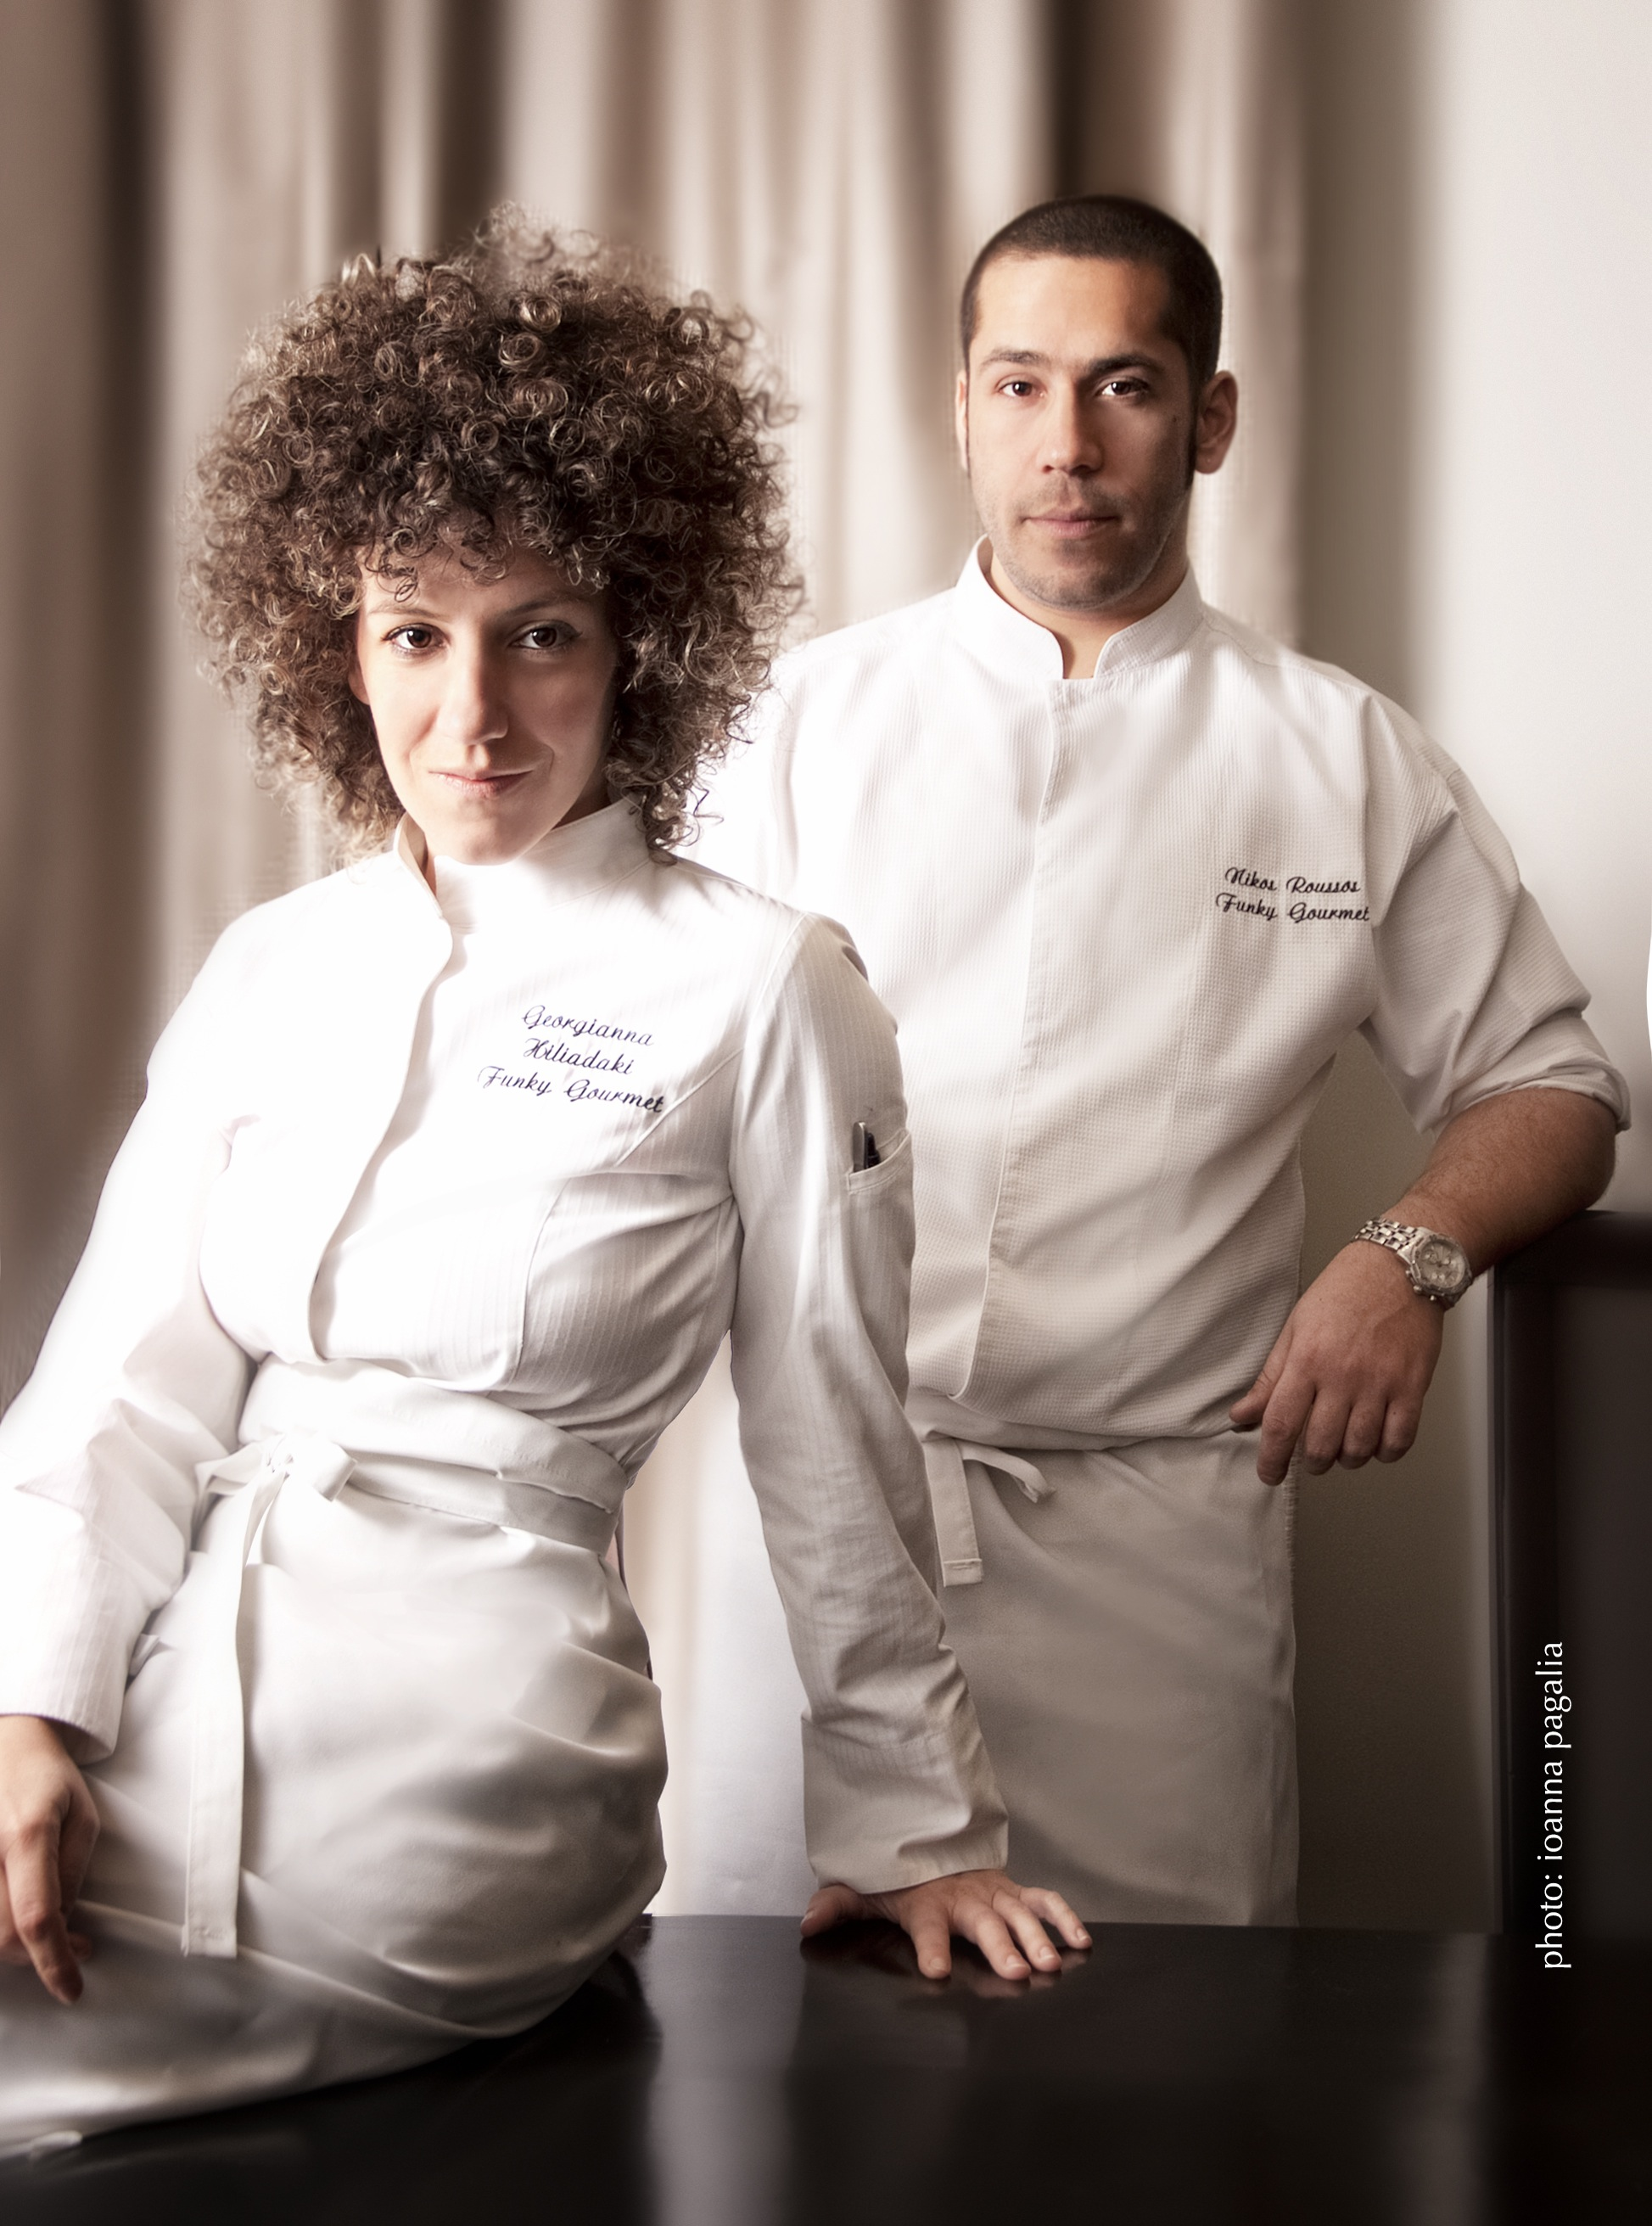 Top 10 Chefs In Greece